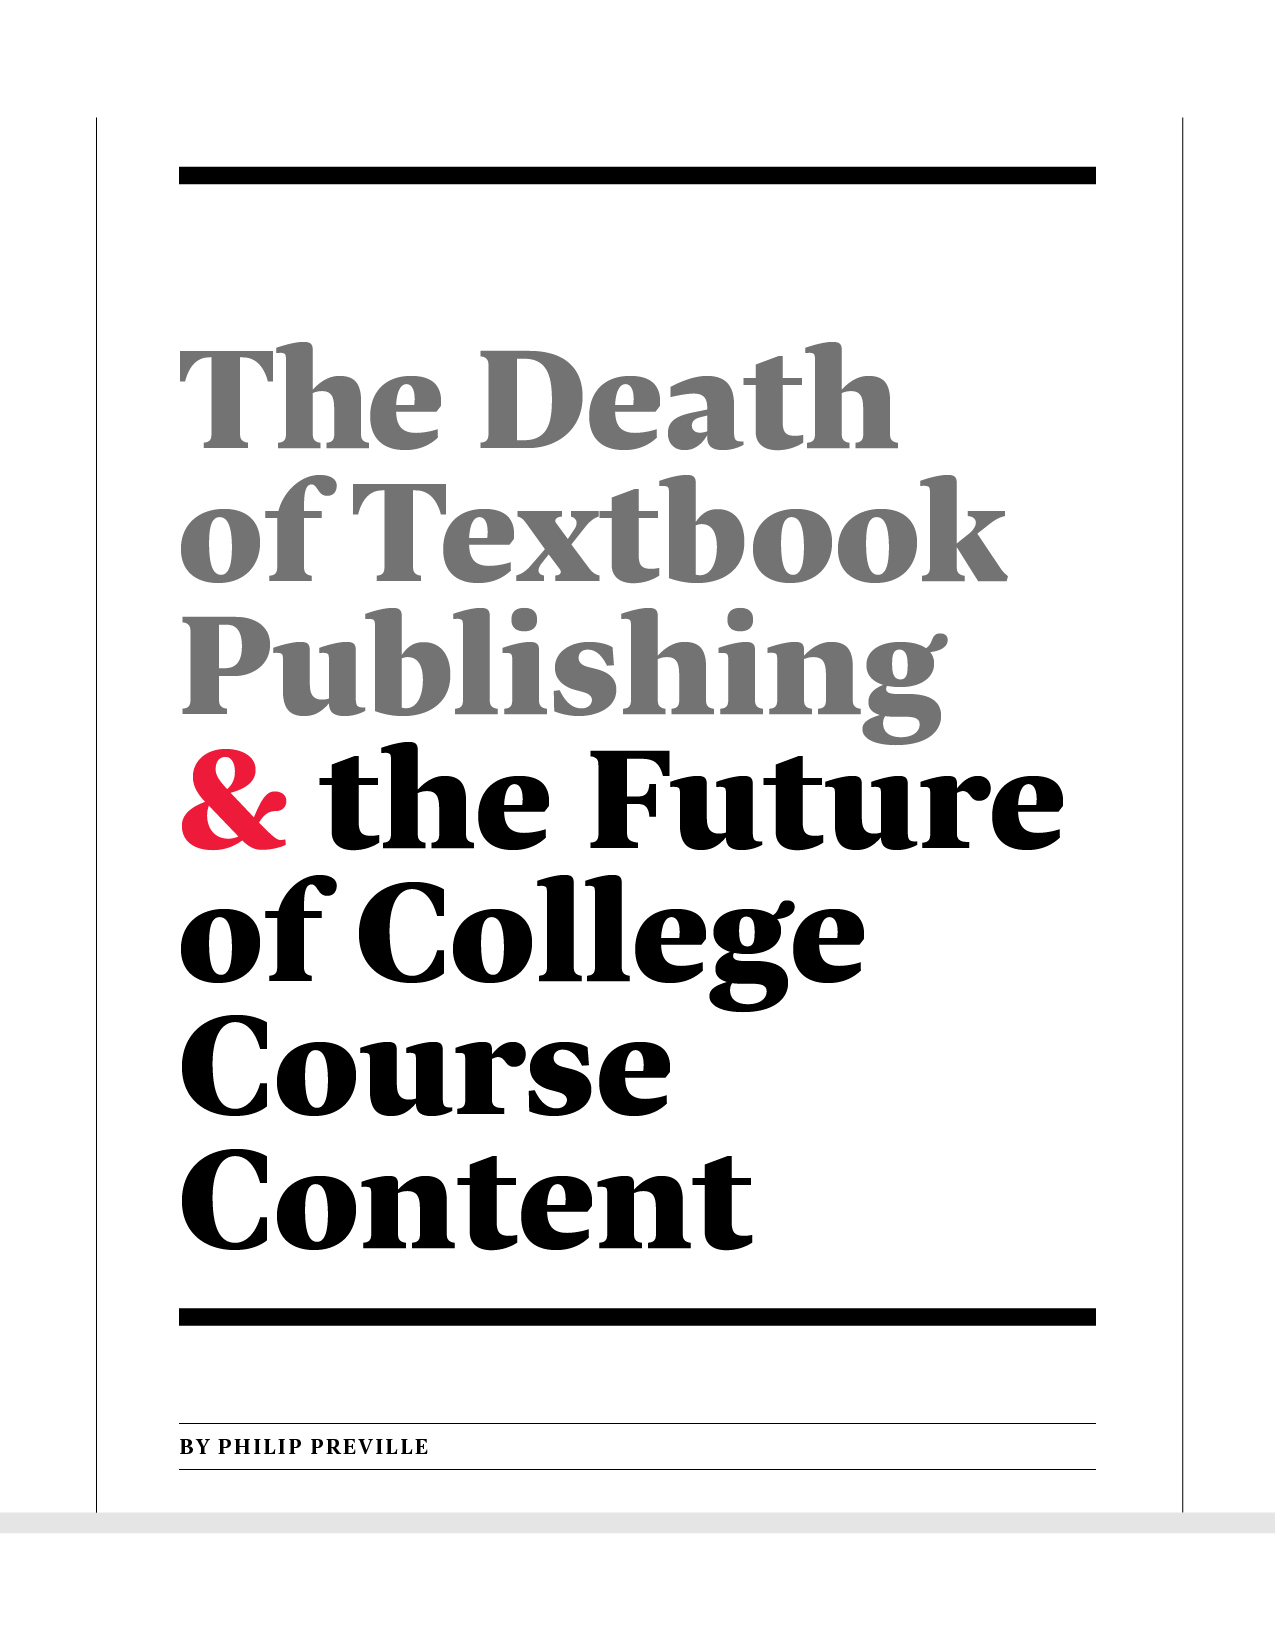 The Death of Textbook Publishing & The Future of College